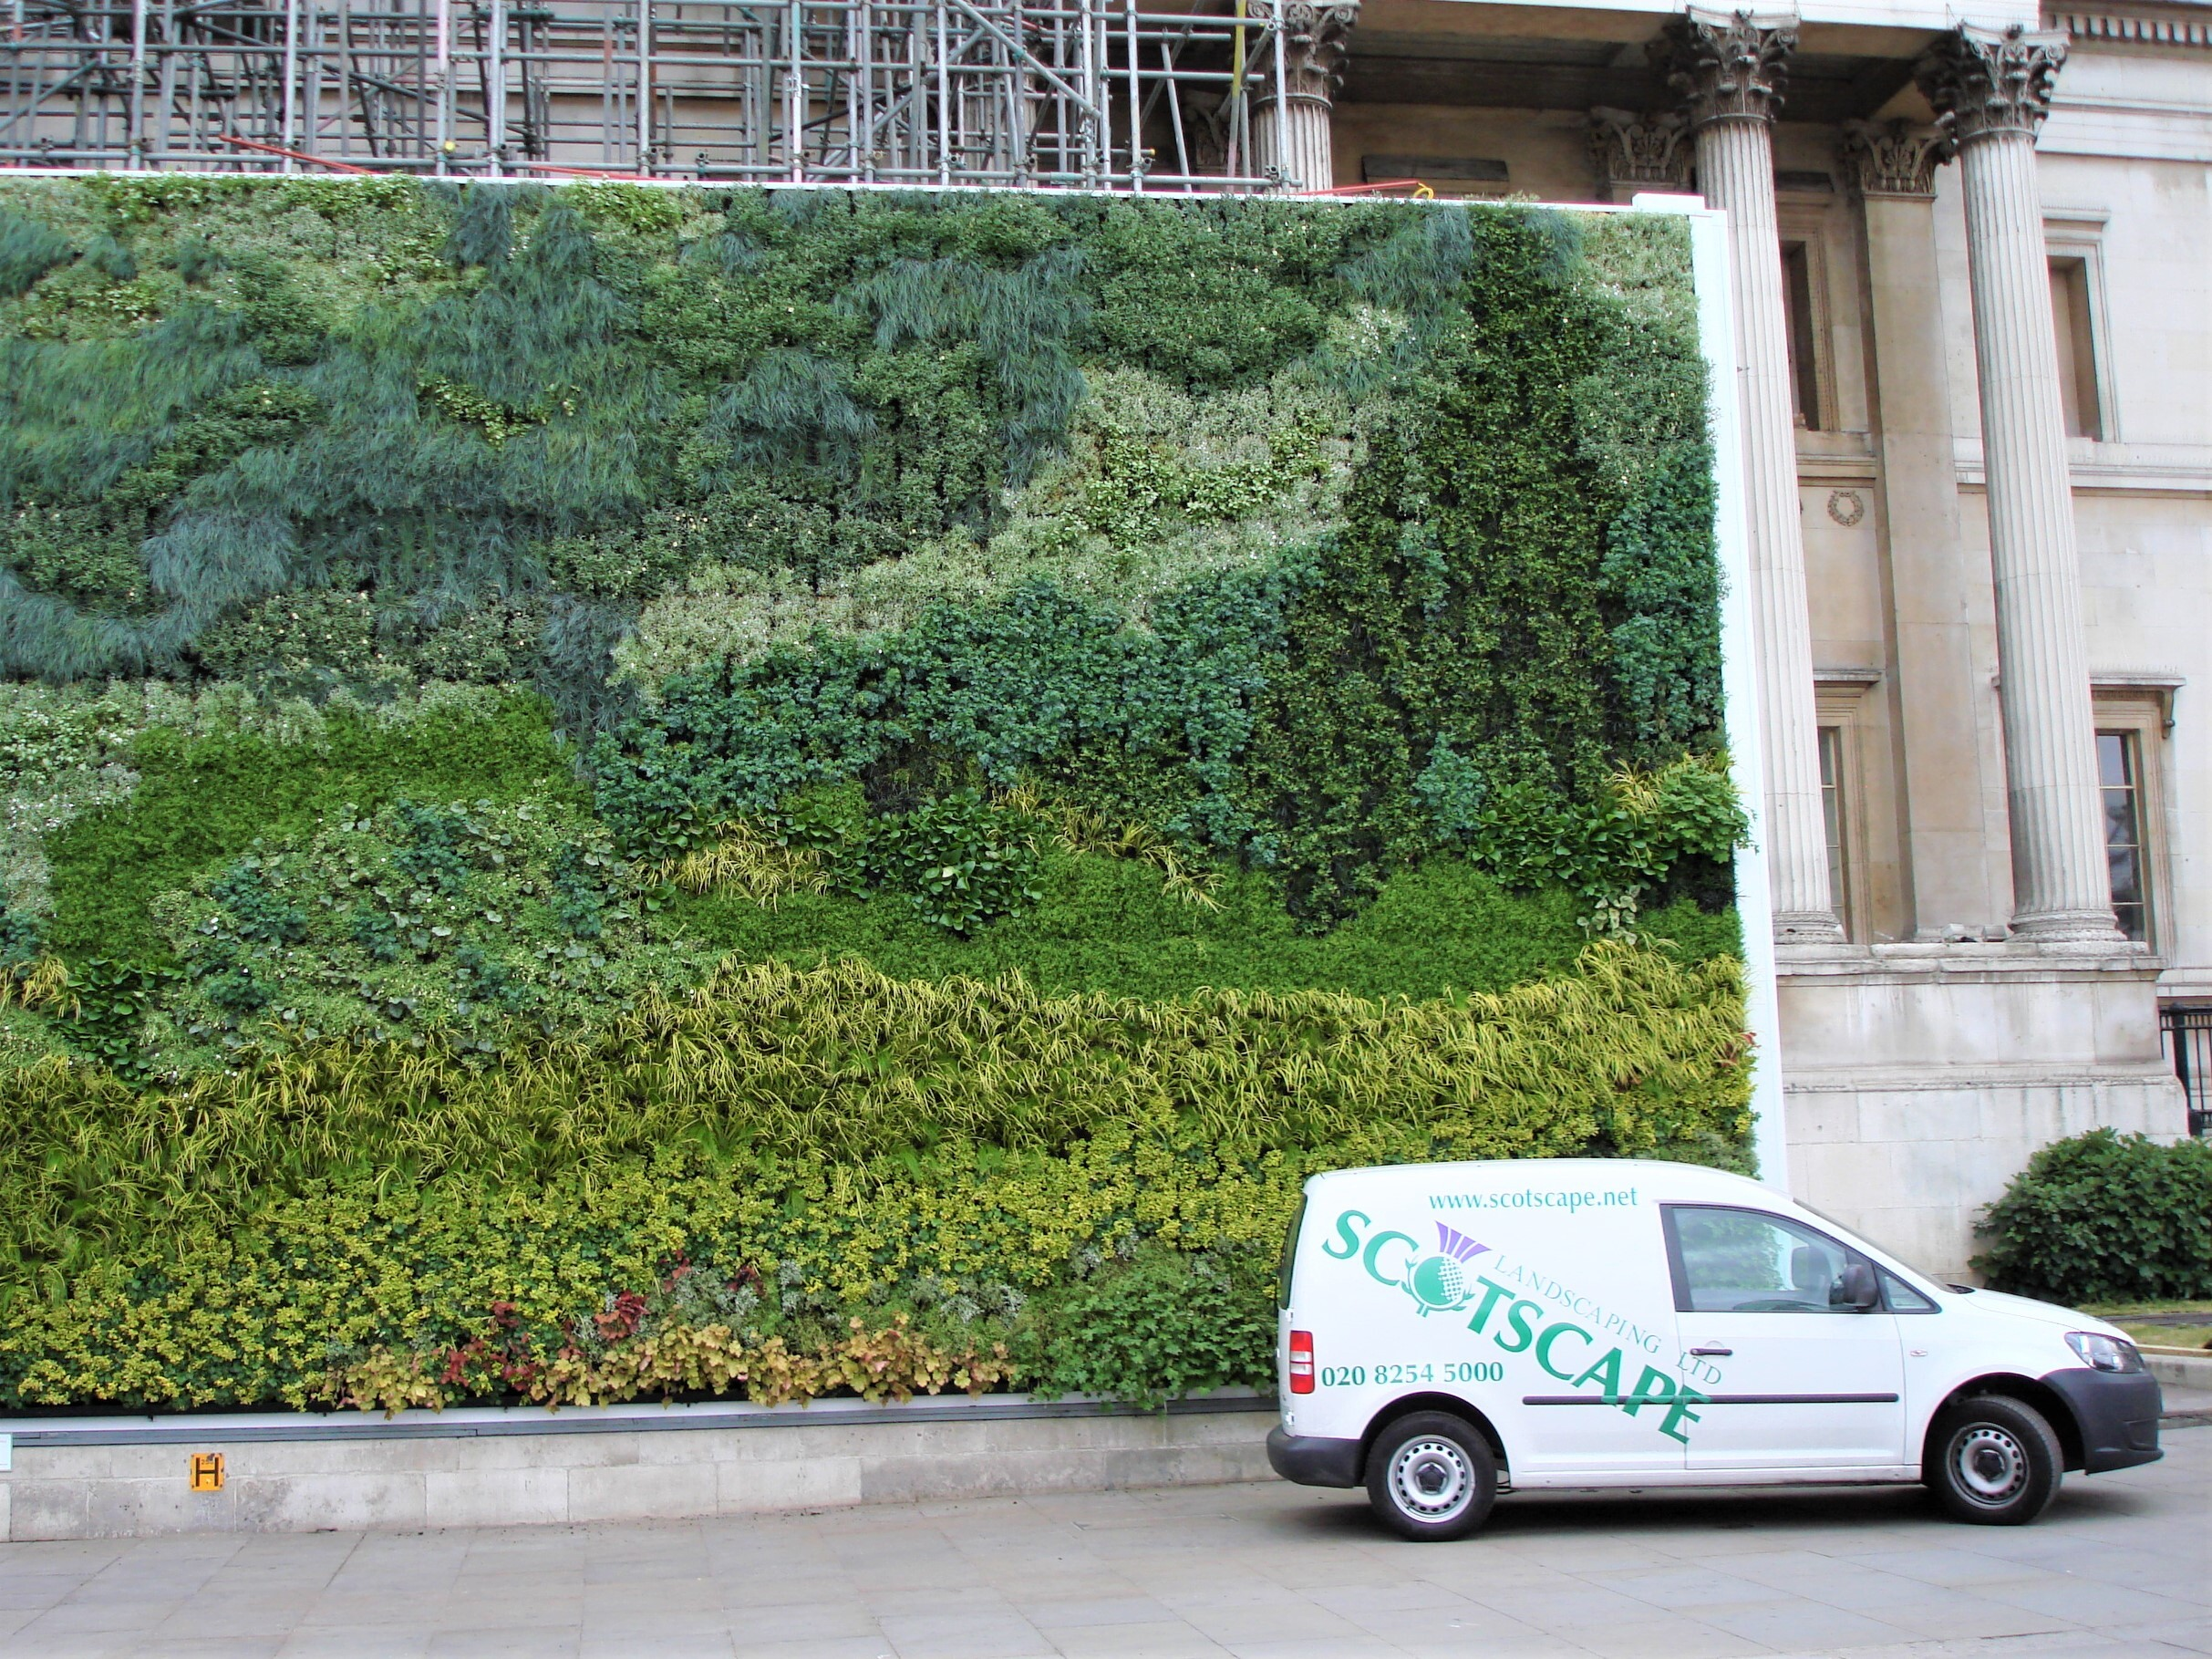 Van Gogh Living Wall at the National Gallery installed by Scotscape